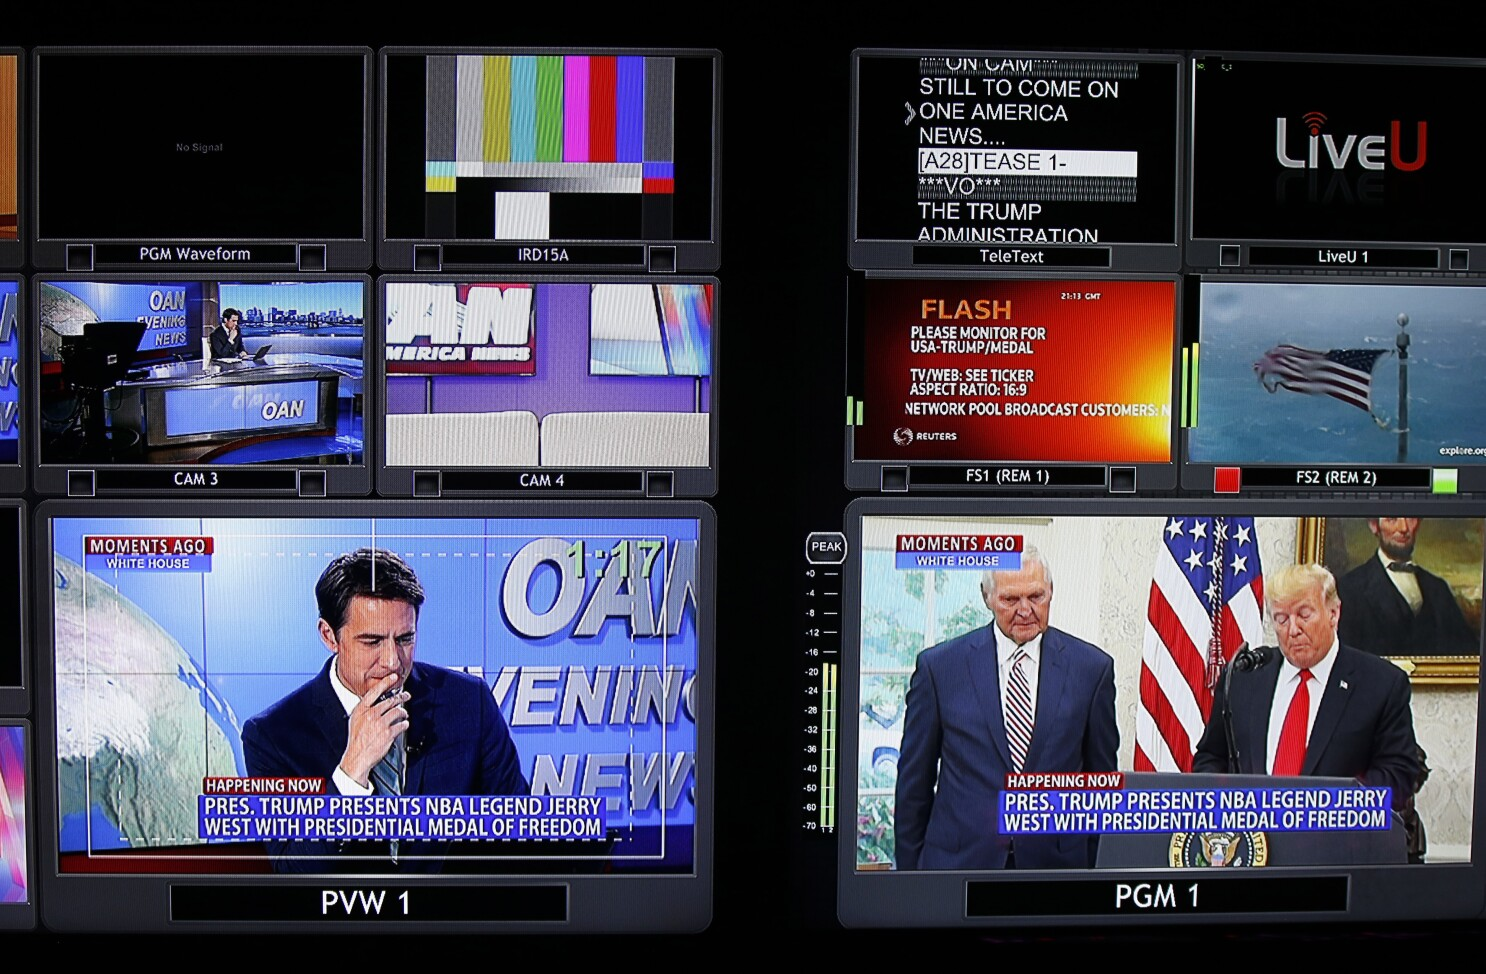 San Diego's One America News could be acquired by firm with ties to Trump